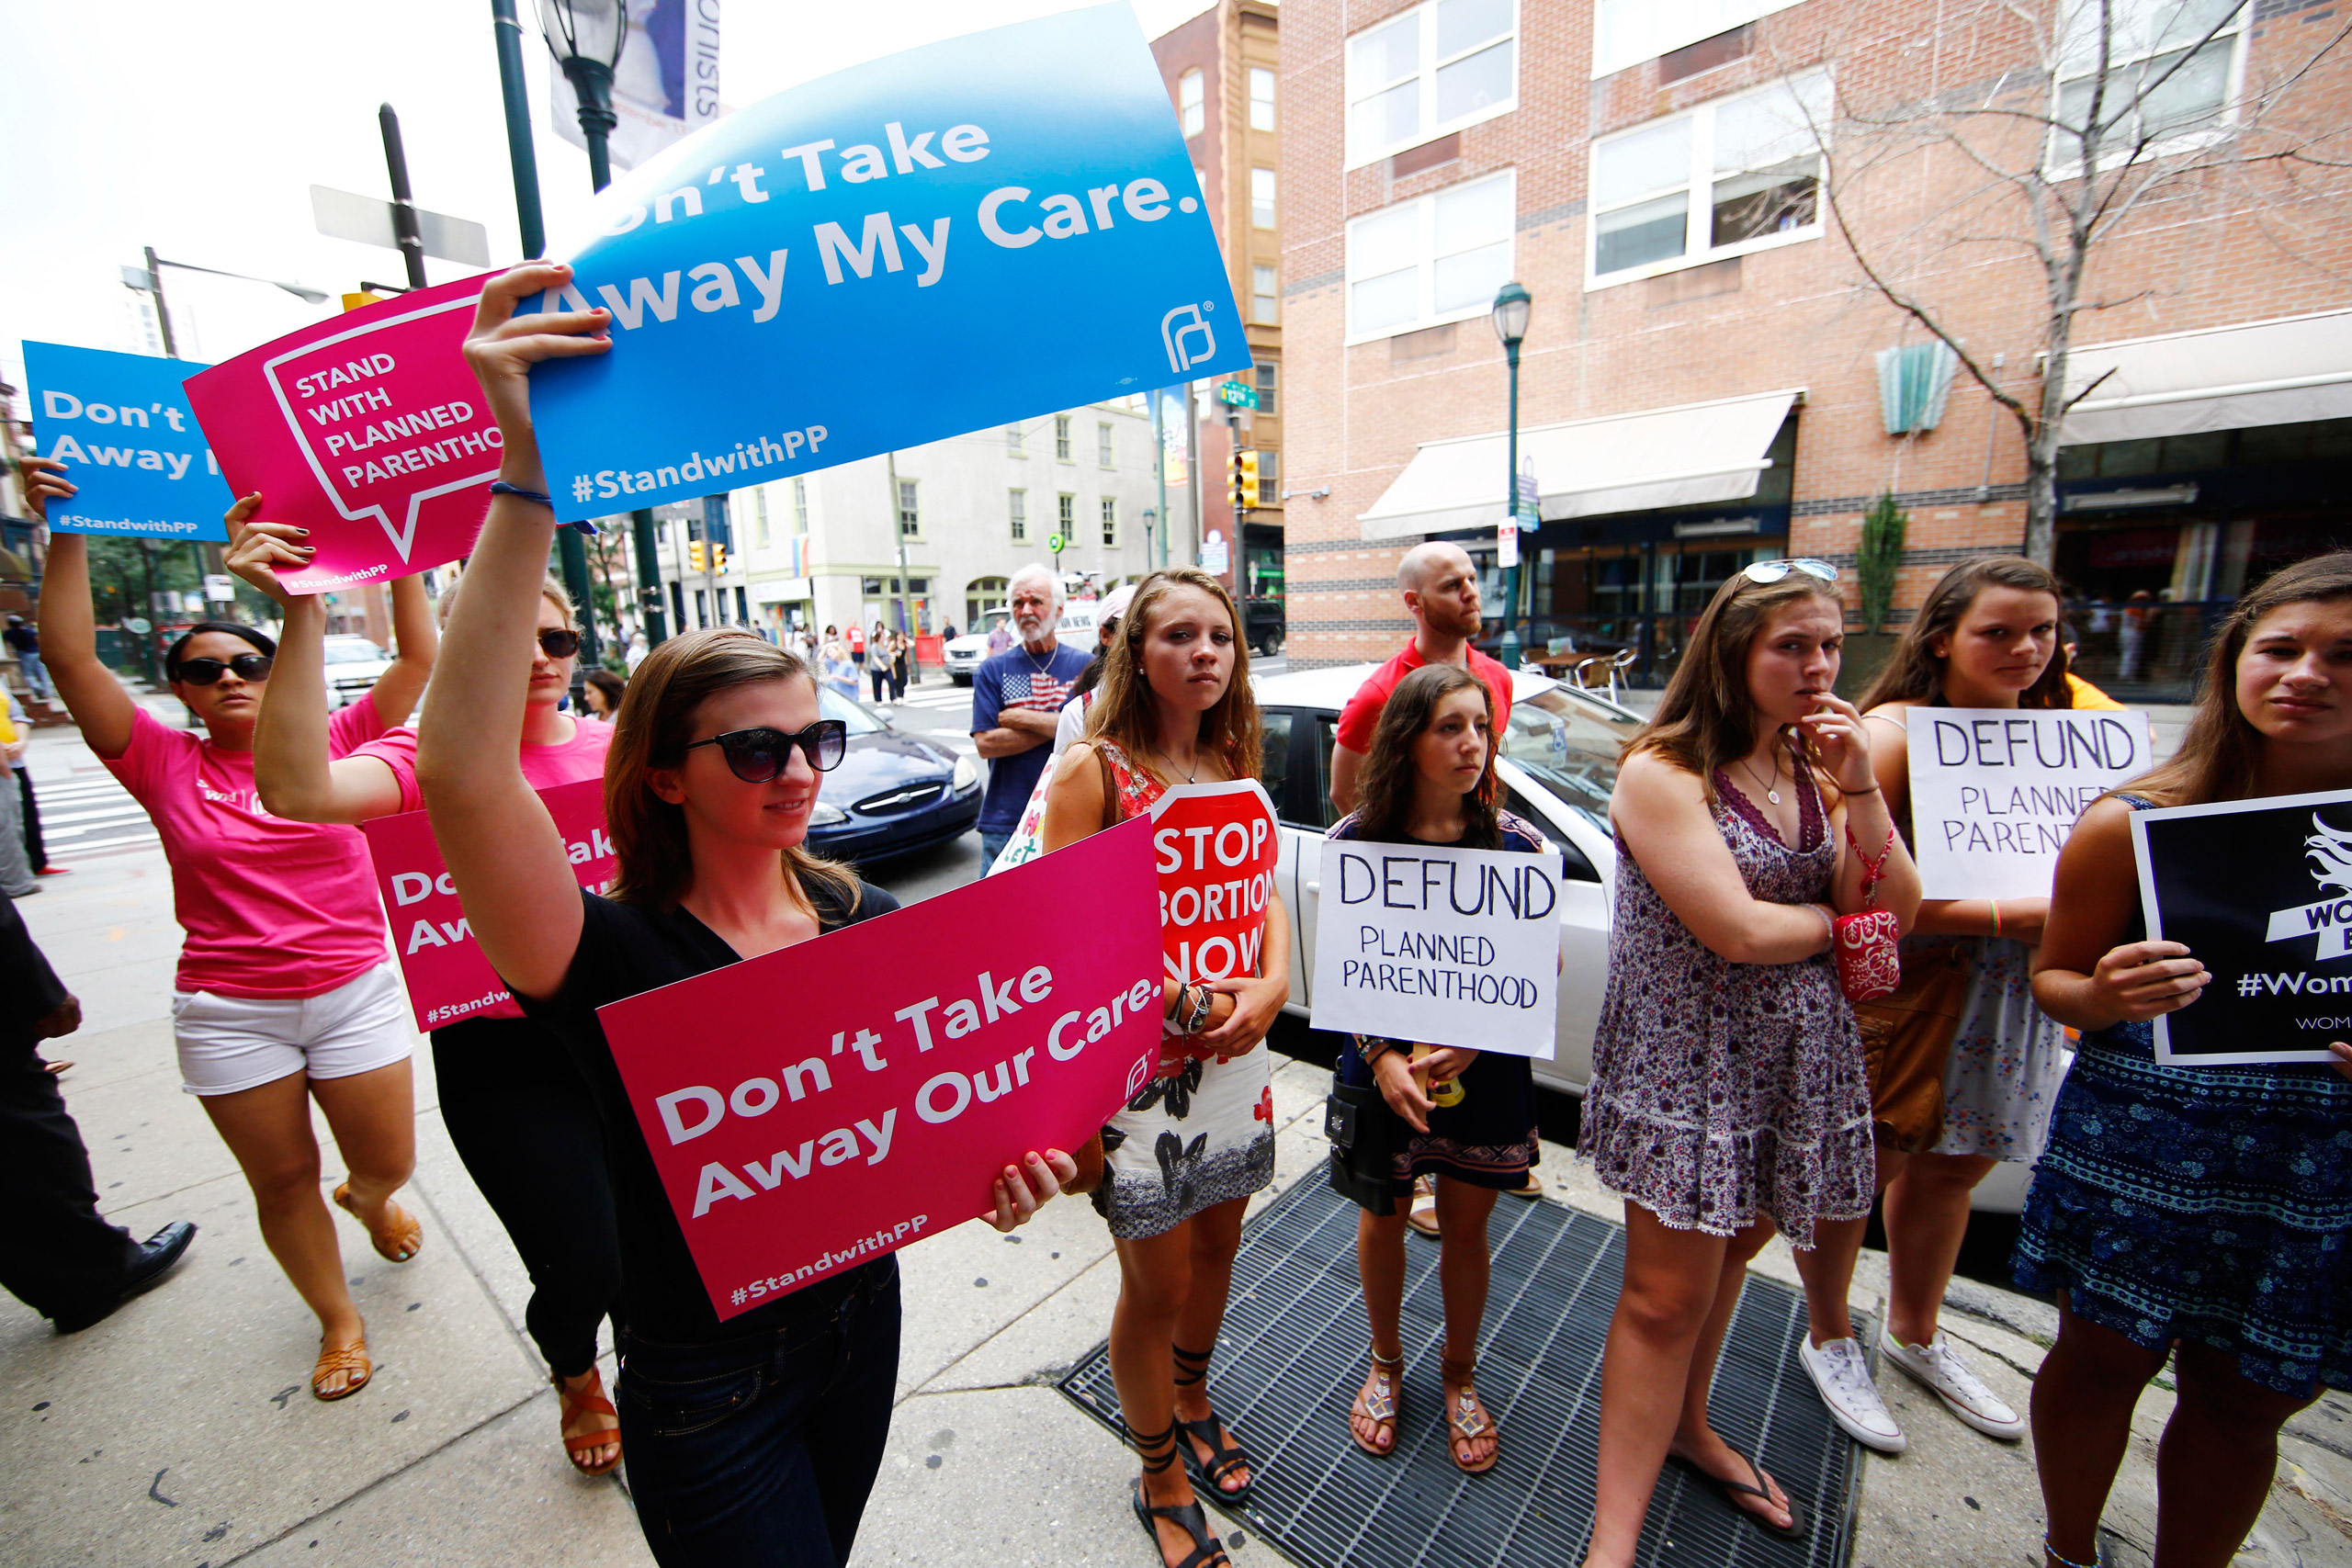 Opponents and supporters of Planned Parenthood demonstrate in Philadelphia on July 28, 2015.